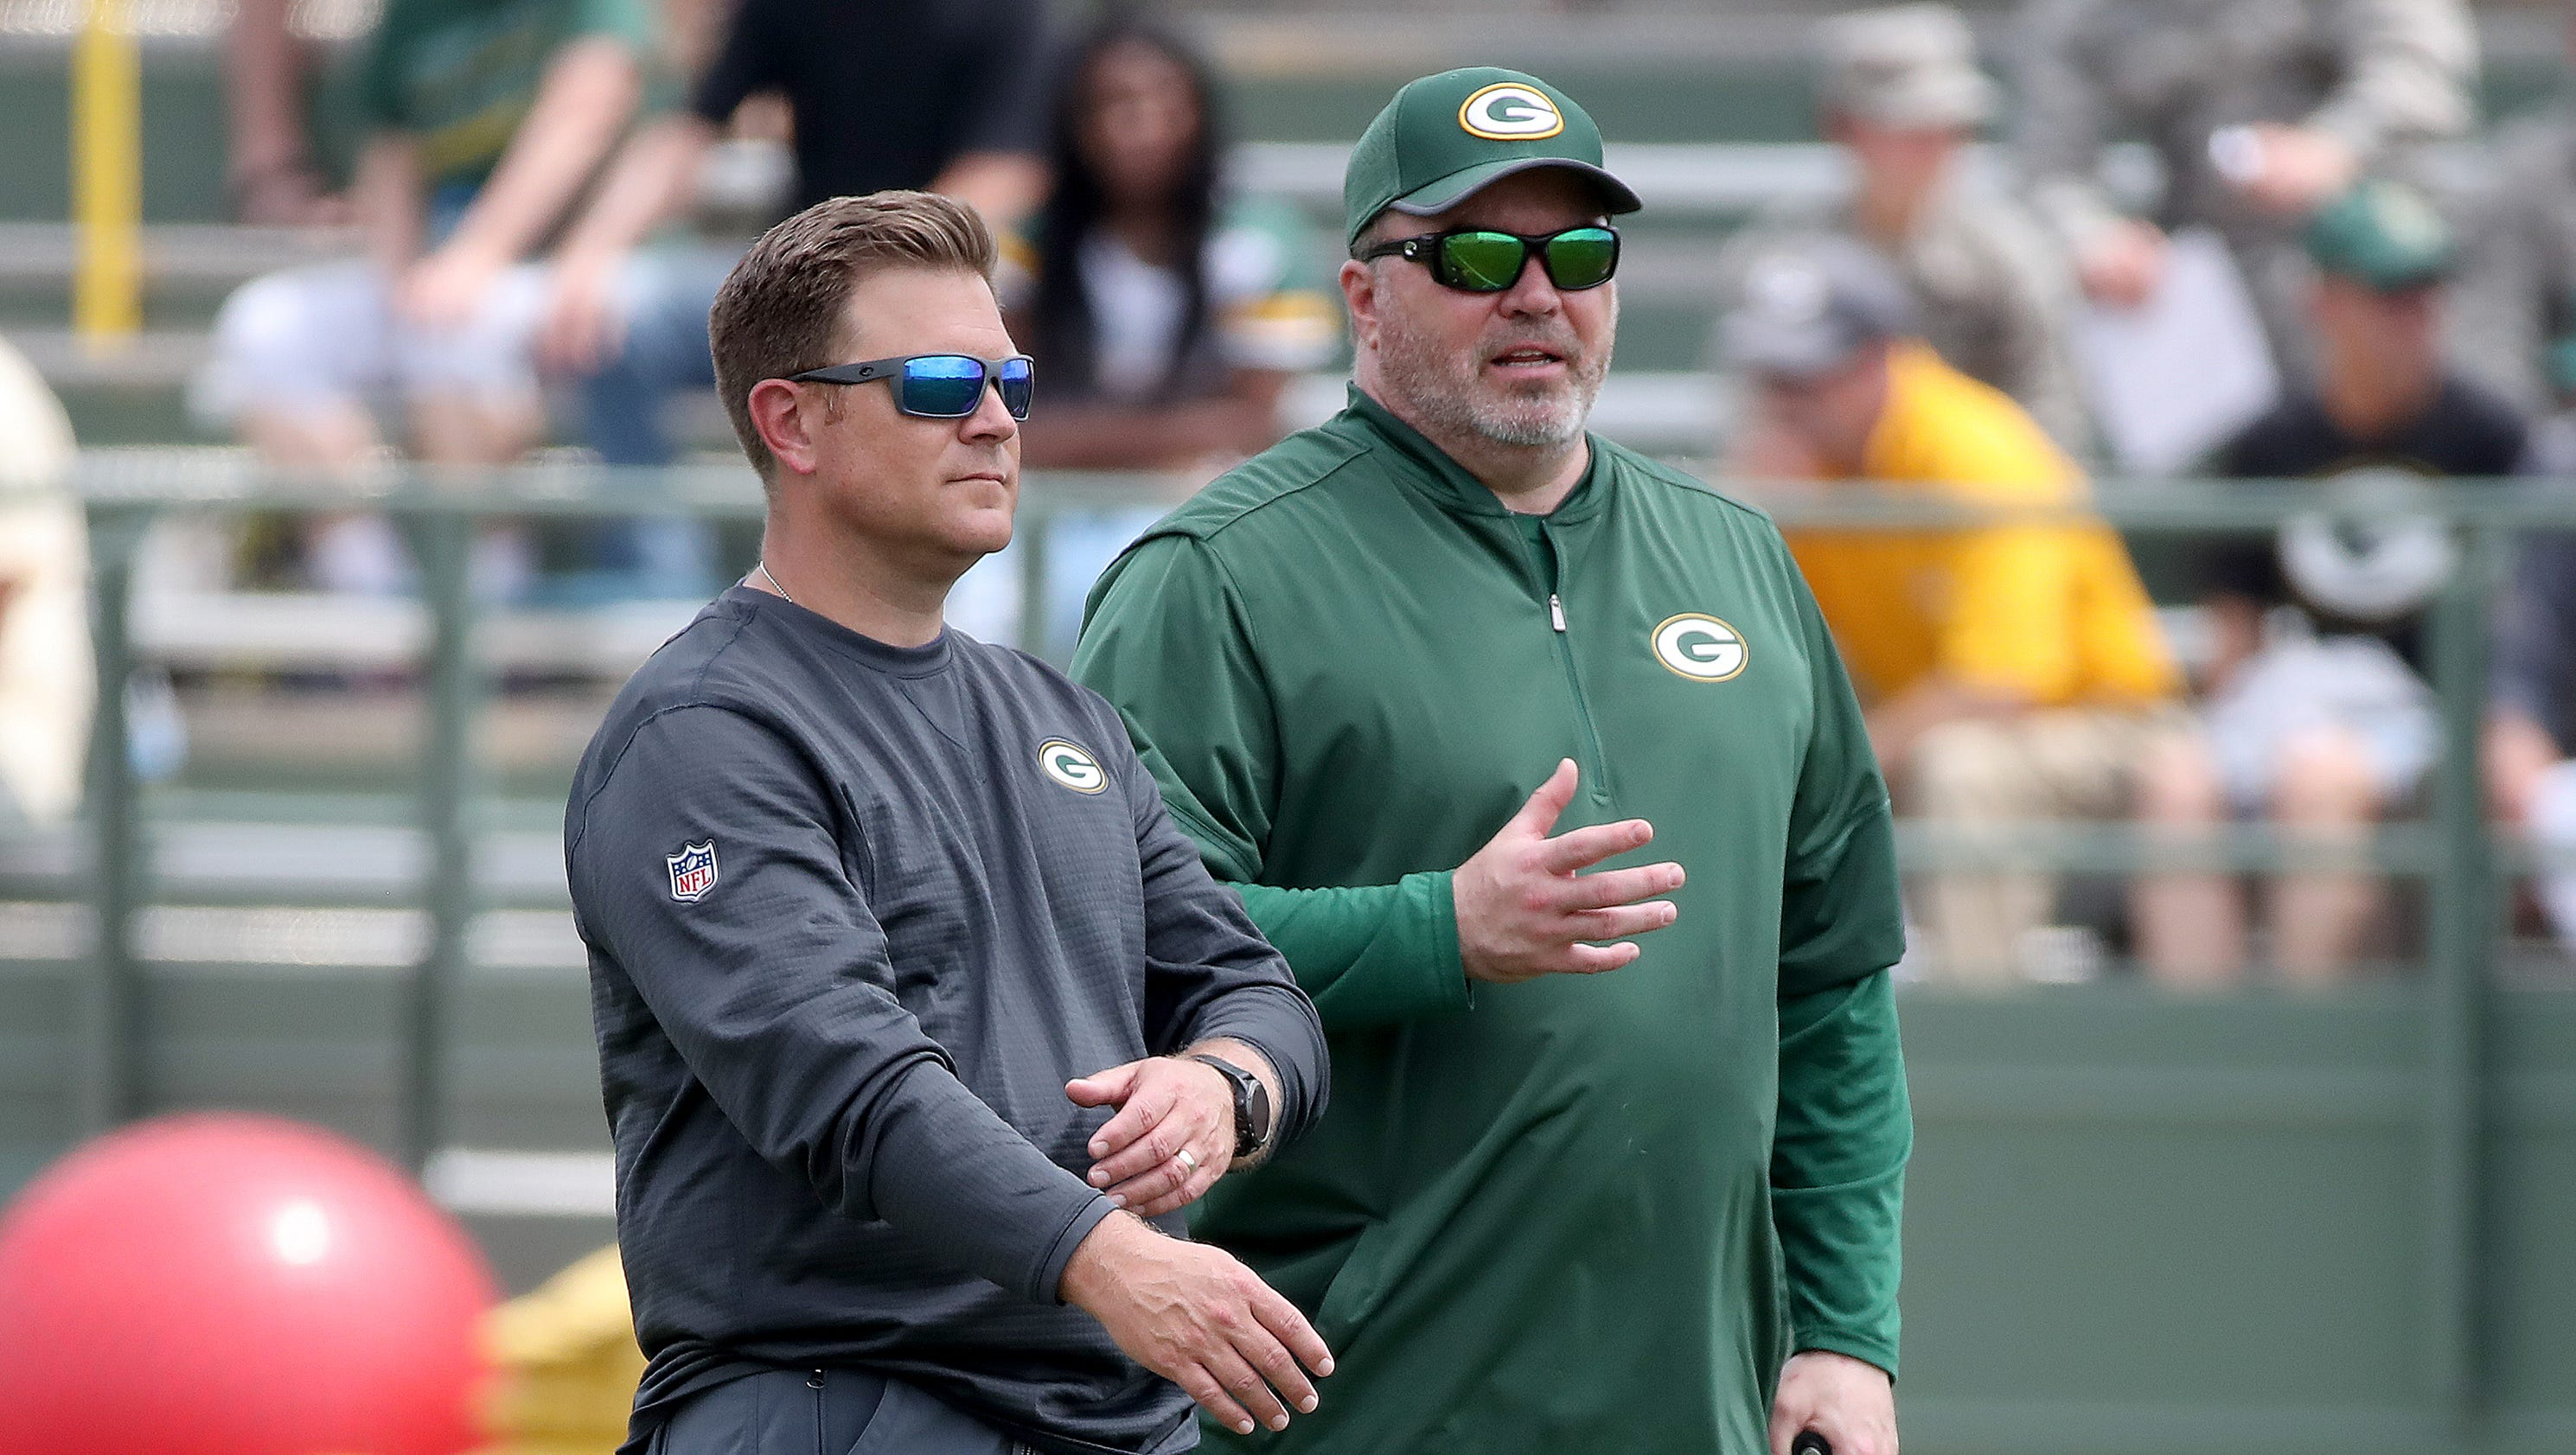 636644253766037680-21-061218-gb-packers-minicamp-5822